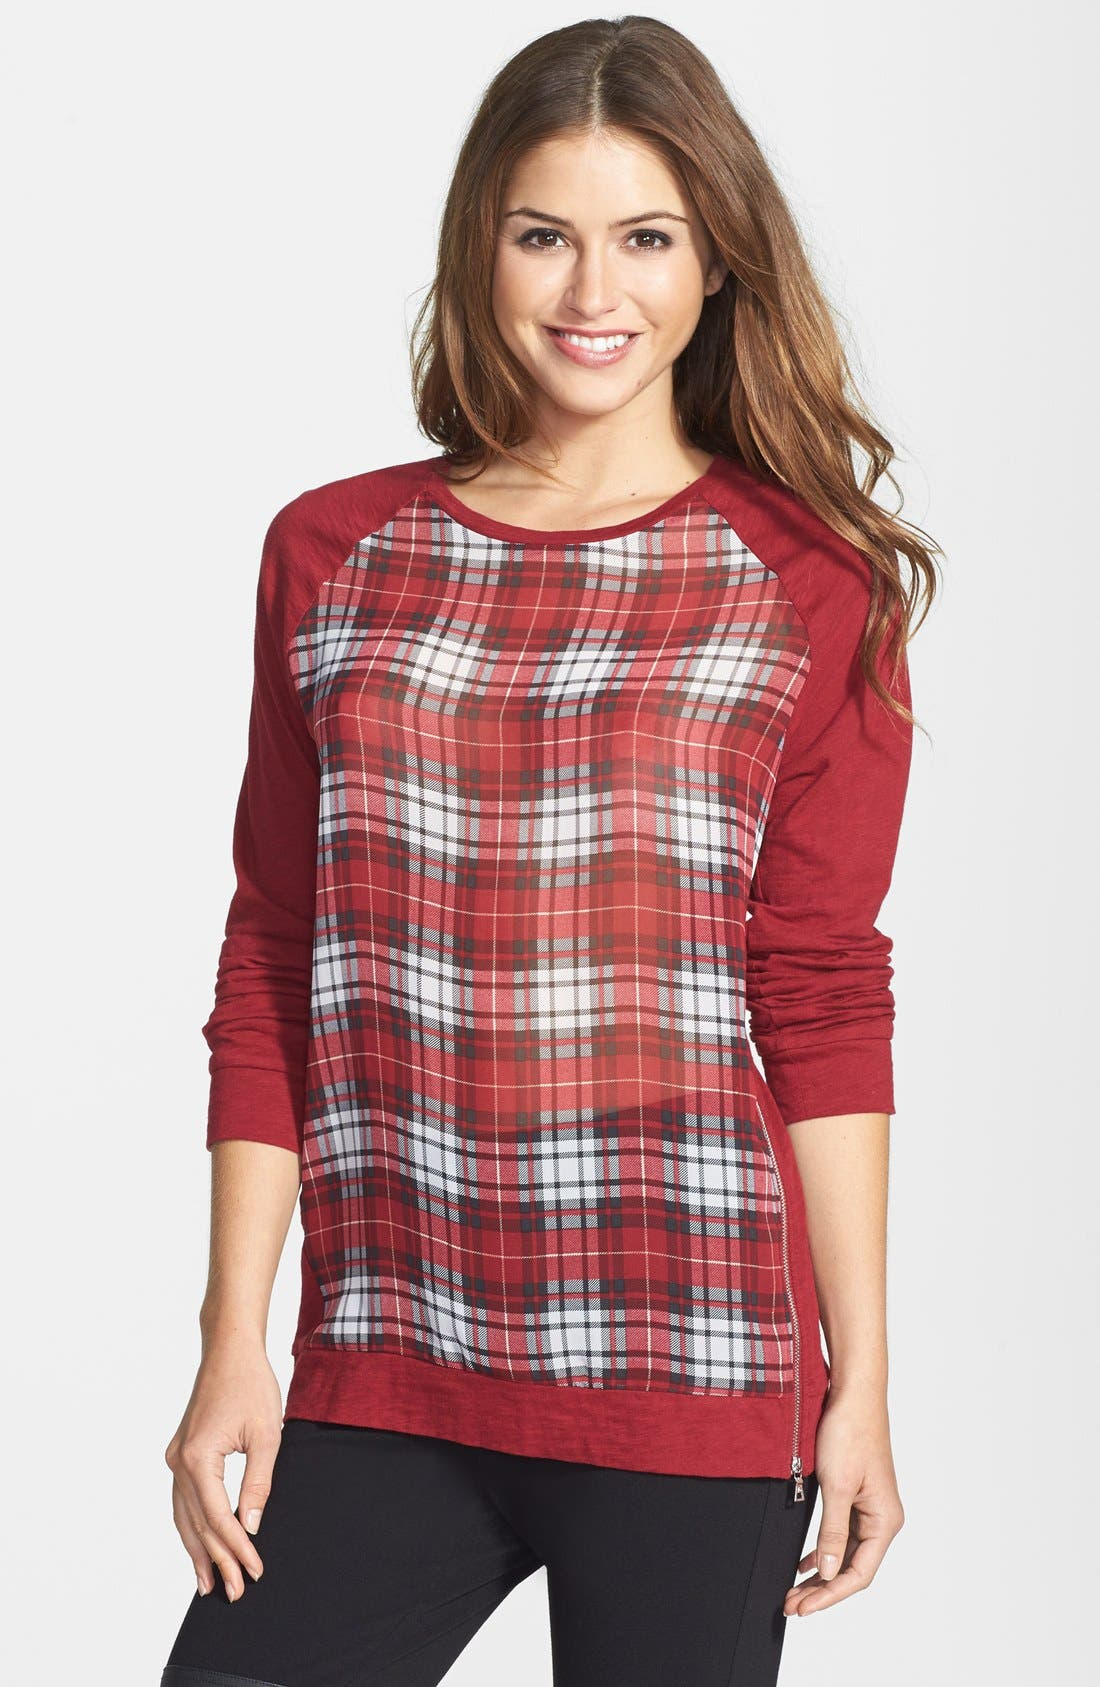 Alternate Image 1 Selected - Two by Vince Camuto Tartan Front Mixed Media Sweatshirt